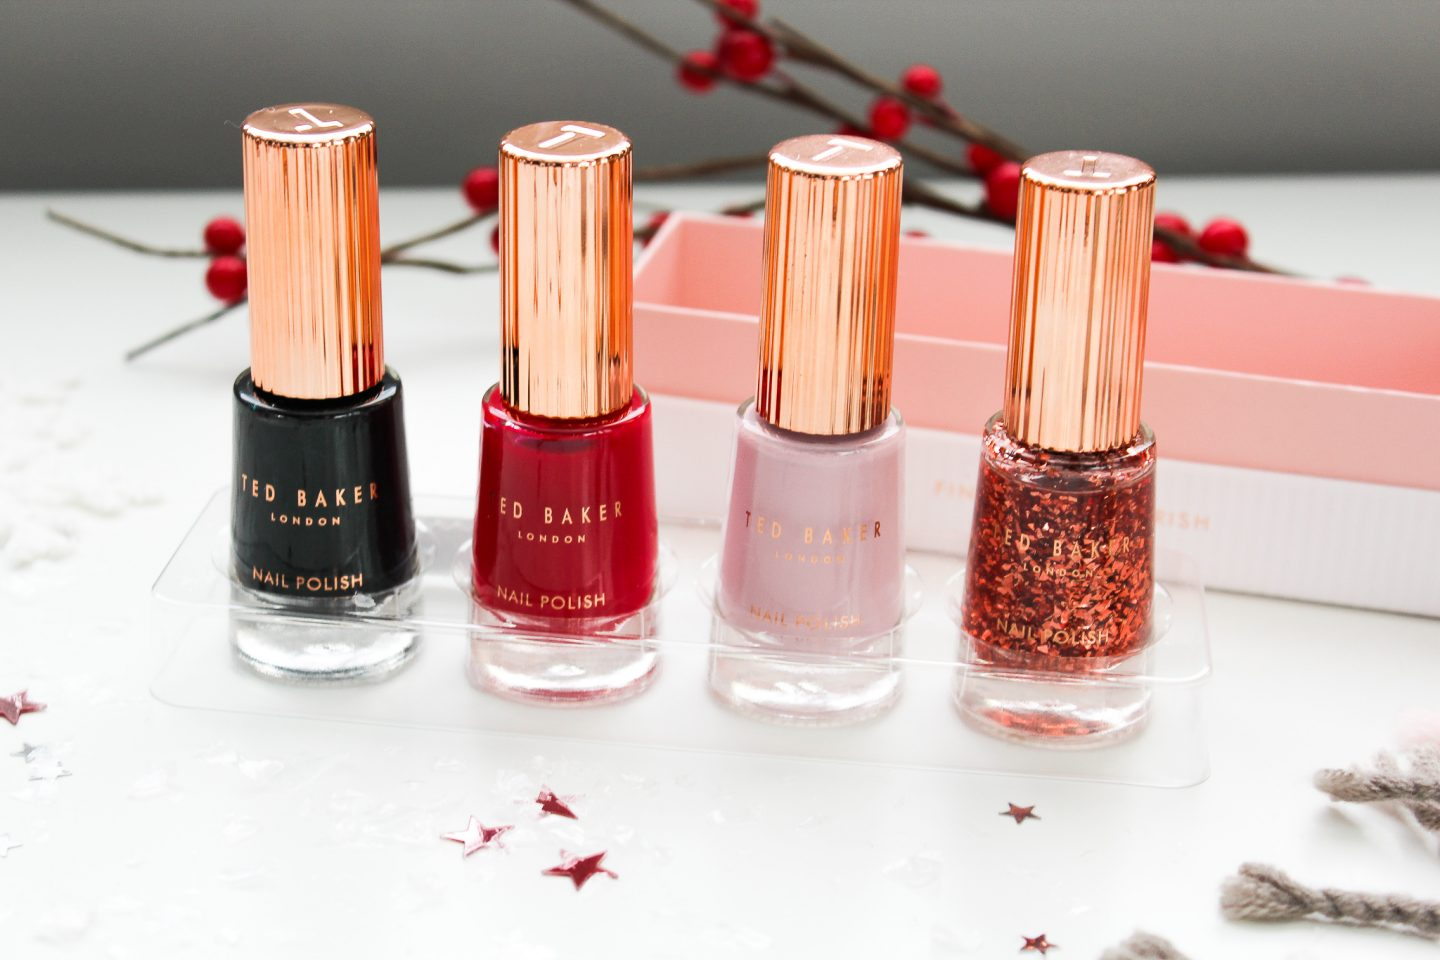 Ted Baker Ted Baker Finishing Flourish Gift nail polishes - Miel and Mint blog